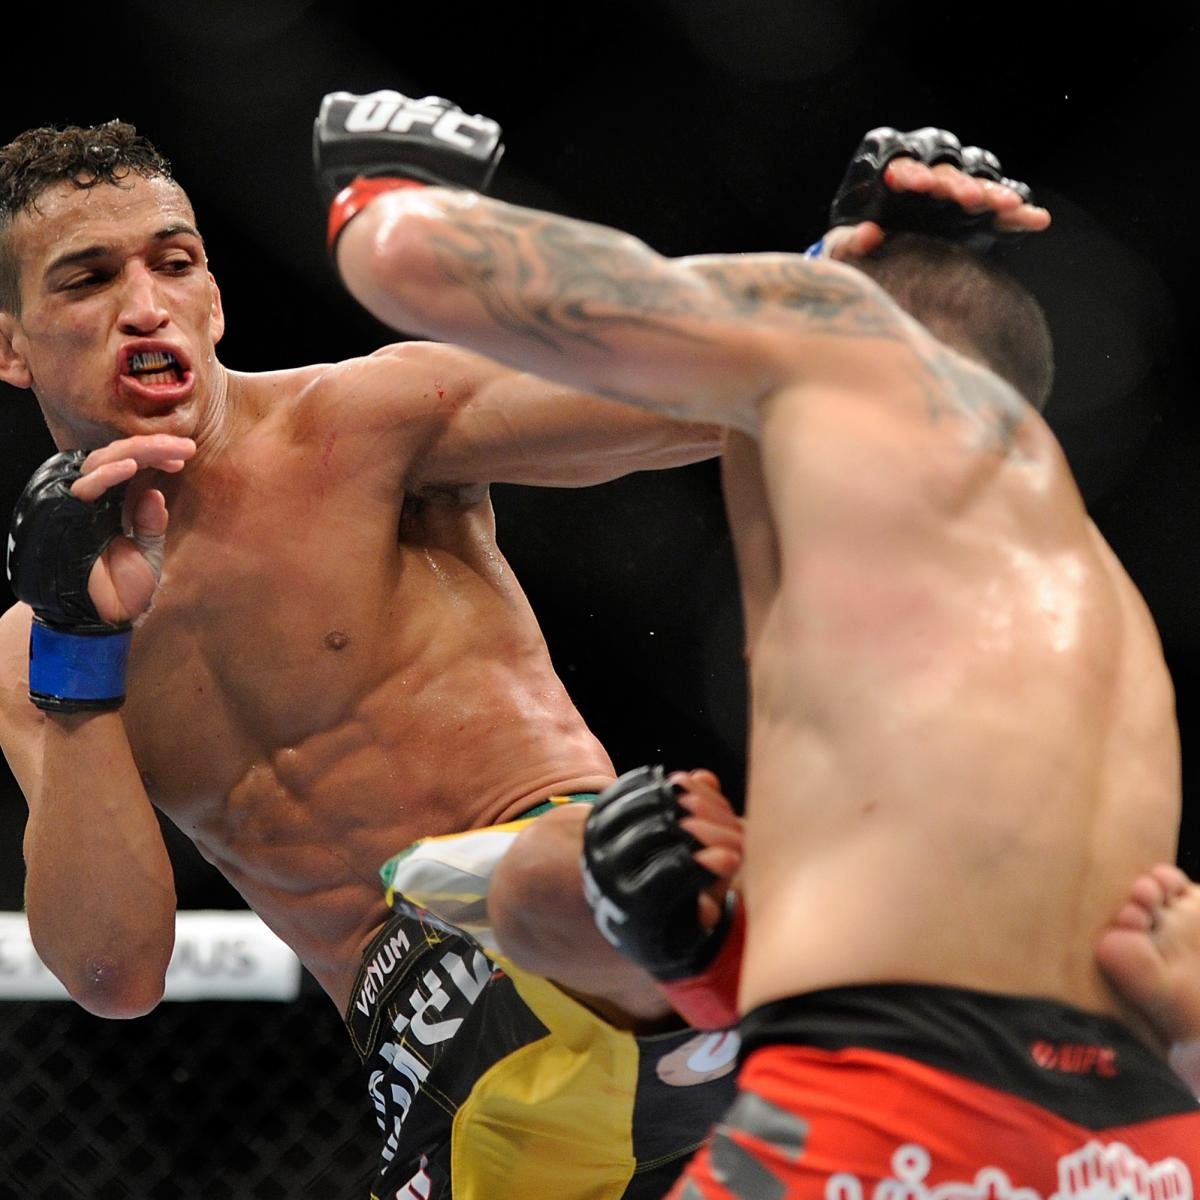 Ufc 256 Results Deiveson Figueiredo Draw Charles Oliveira Win Highlight Card Bleacher Report Latest News Videos And Highlights